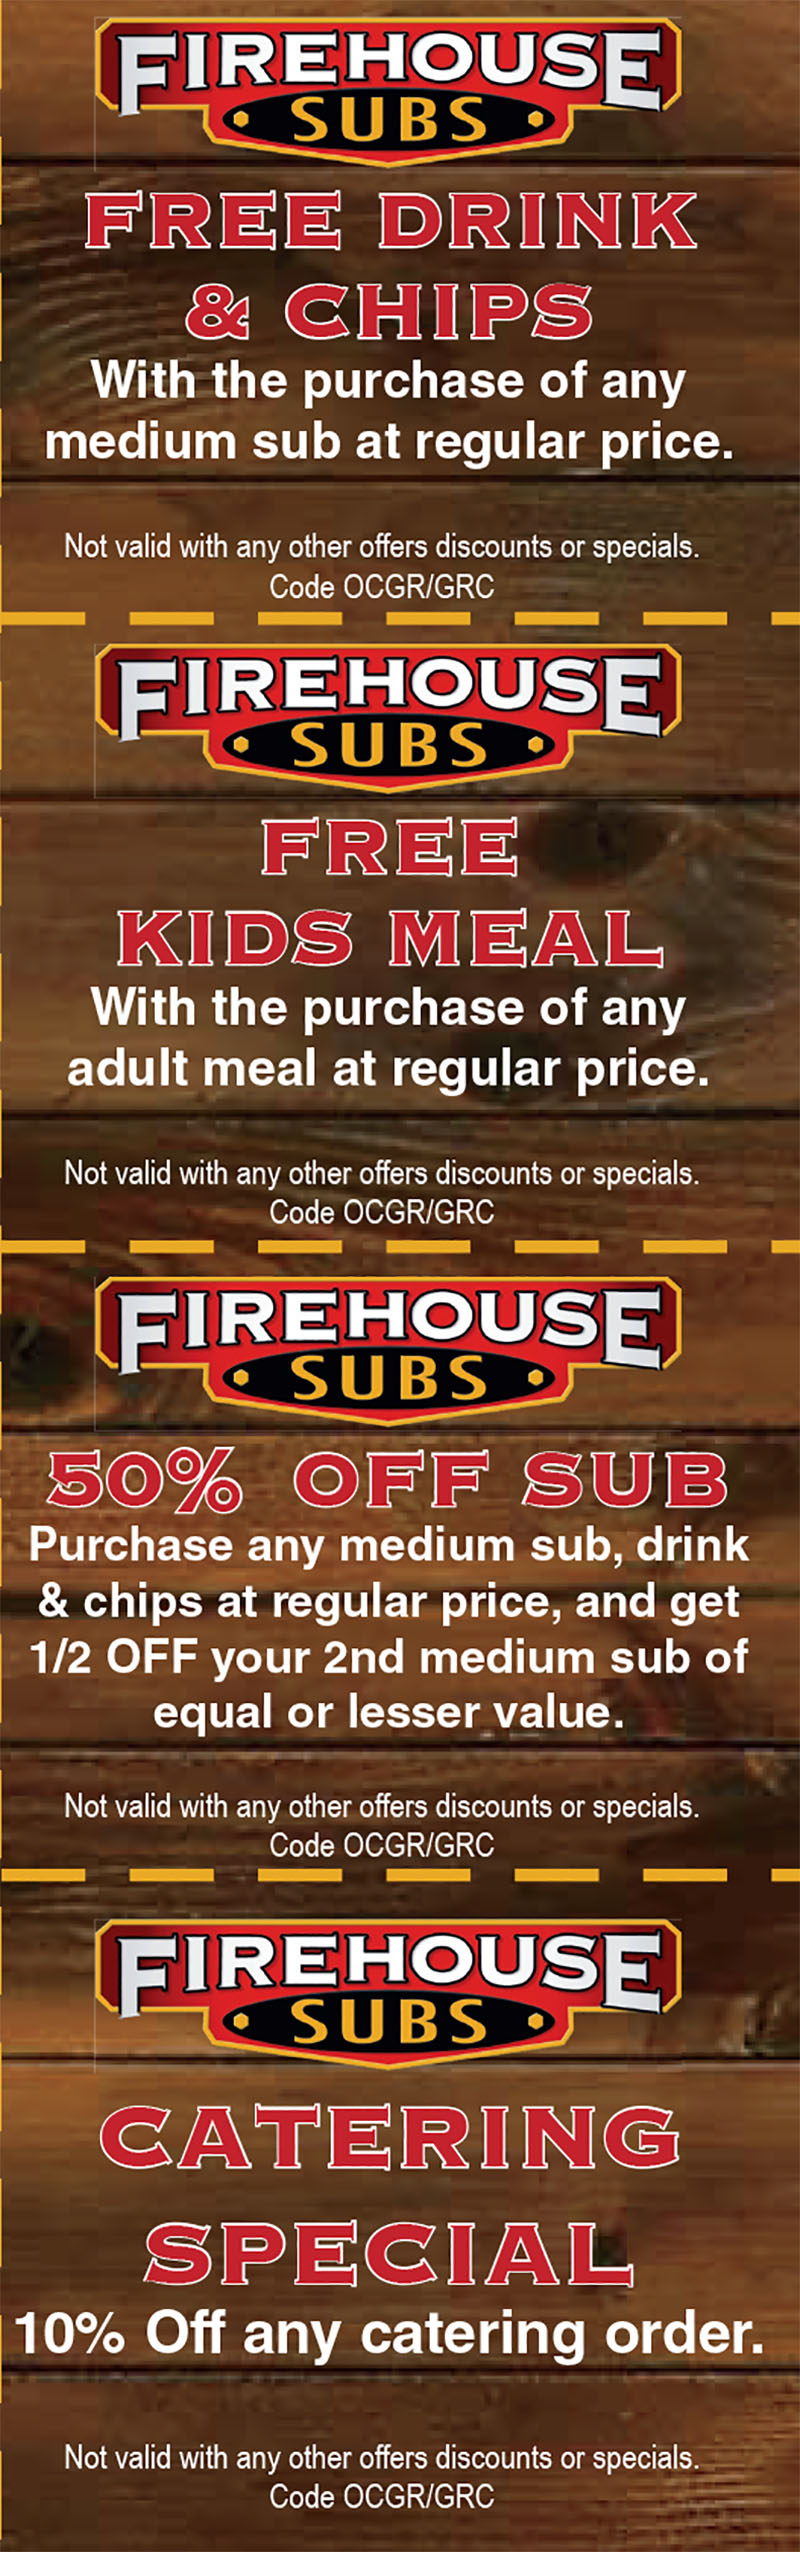 Firehouse subs coupon code